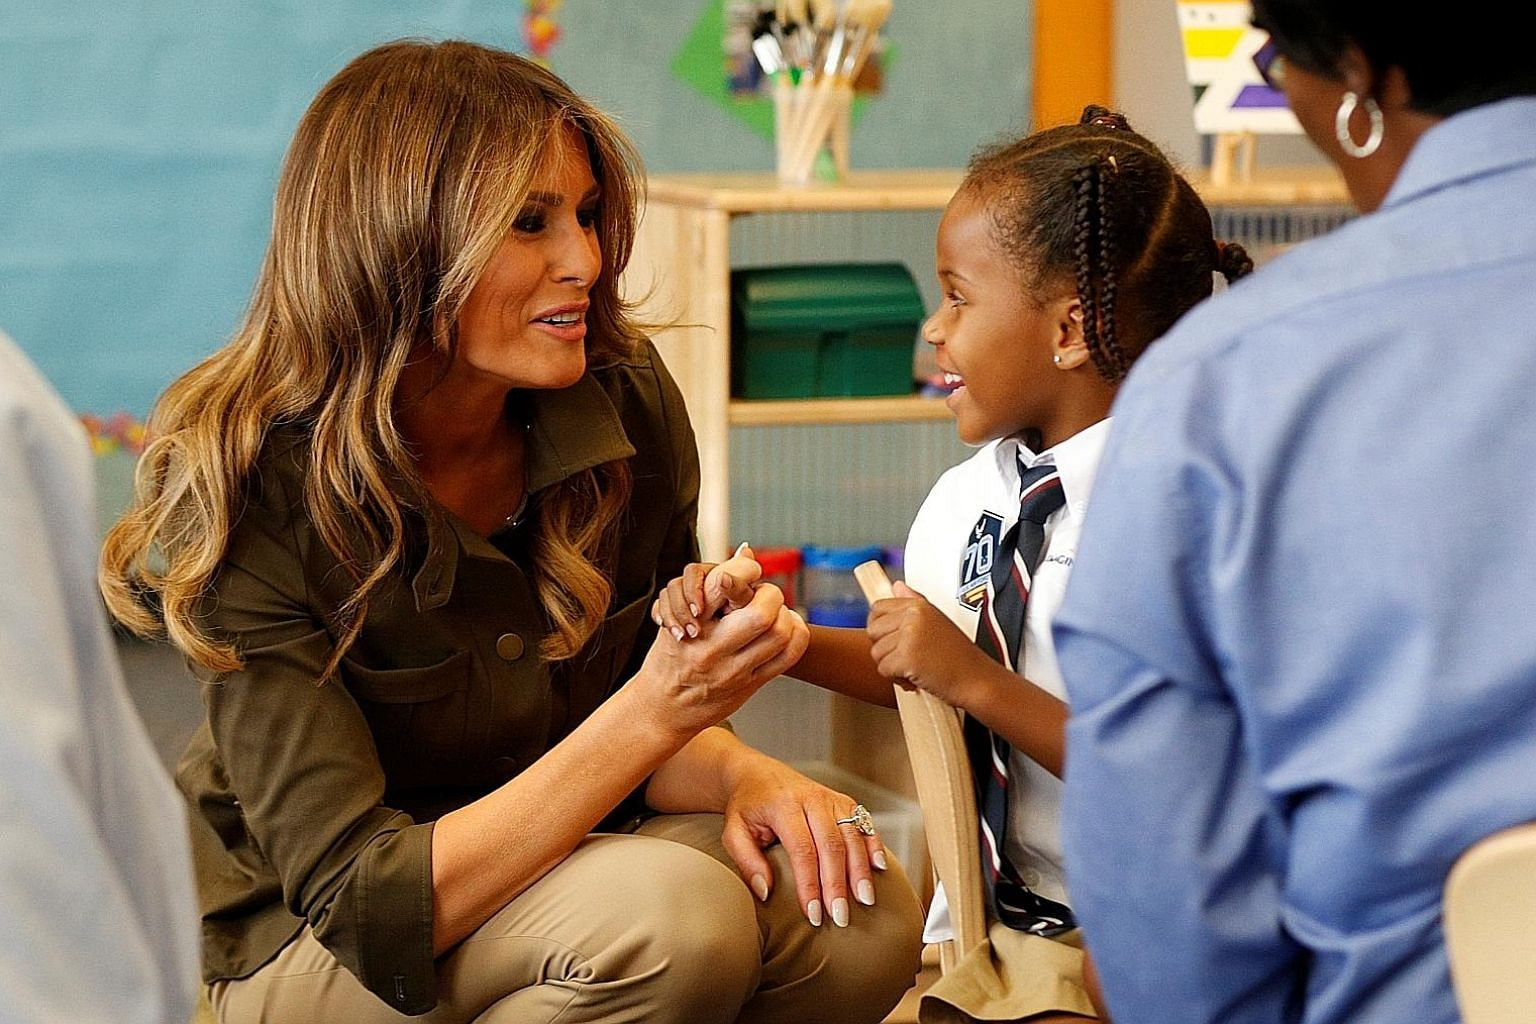 Mrs Melania Trump with a child at a youth centre at Joint Base Andrews in Maryland last Friday. She had travelled there in a show of support for military families. The United States First Lady is taking on a public schedule that is beginning to resem